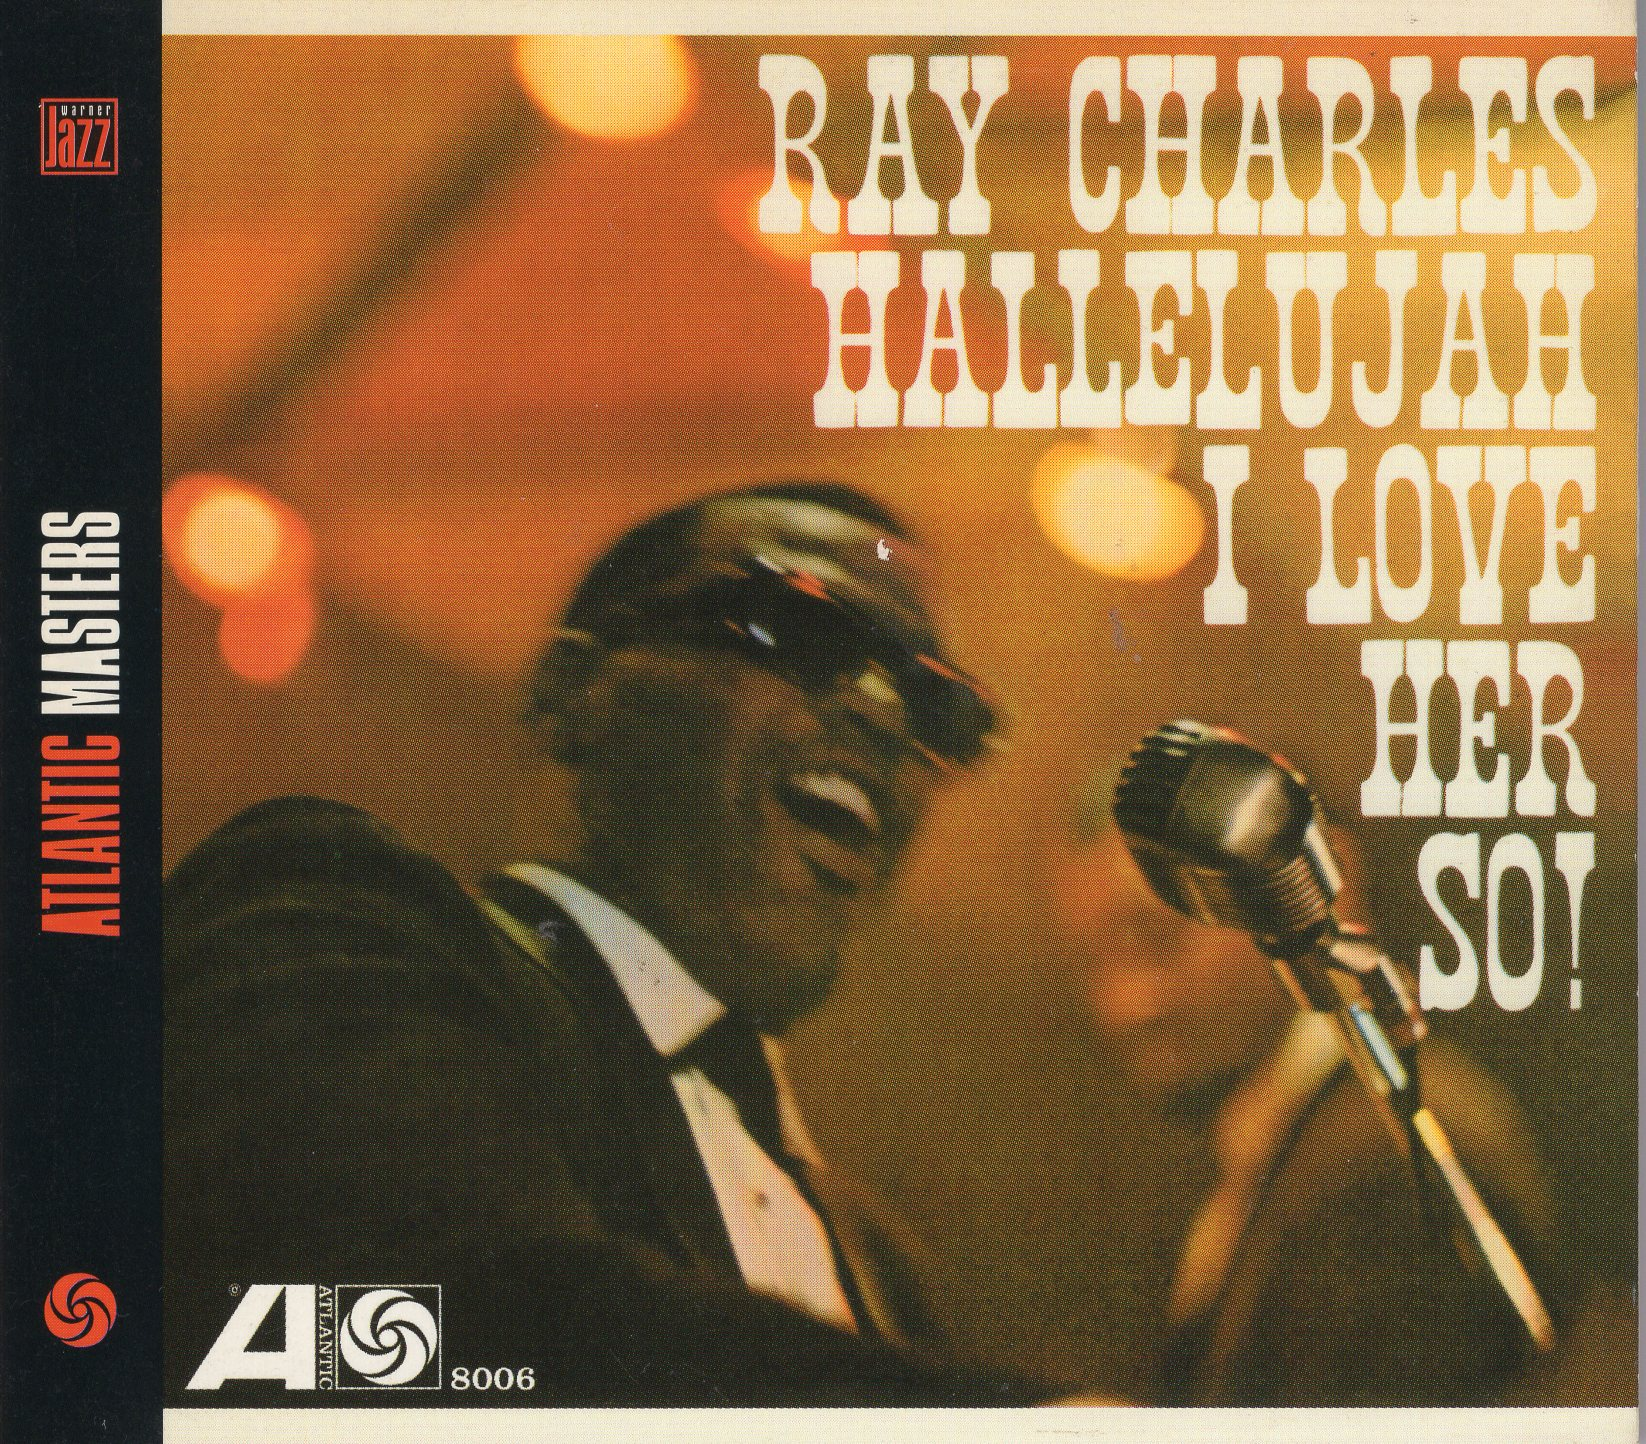 """Hallelujah I love her so!"" Ray Charles"